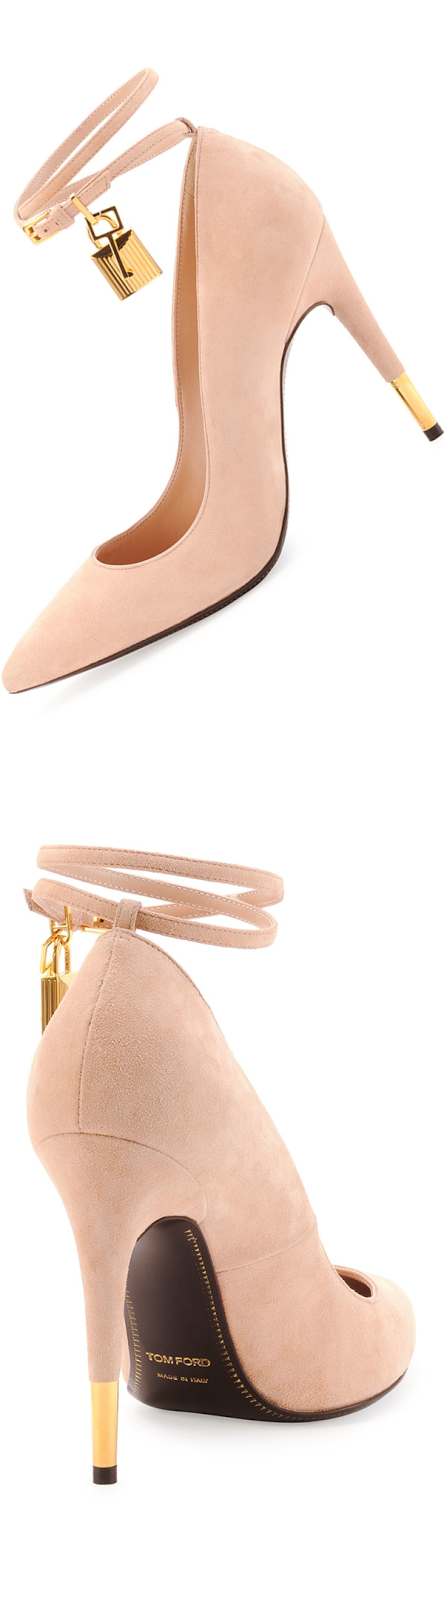 Tom Ford Suede Ankle-Lock Pump, Wild Rose